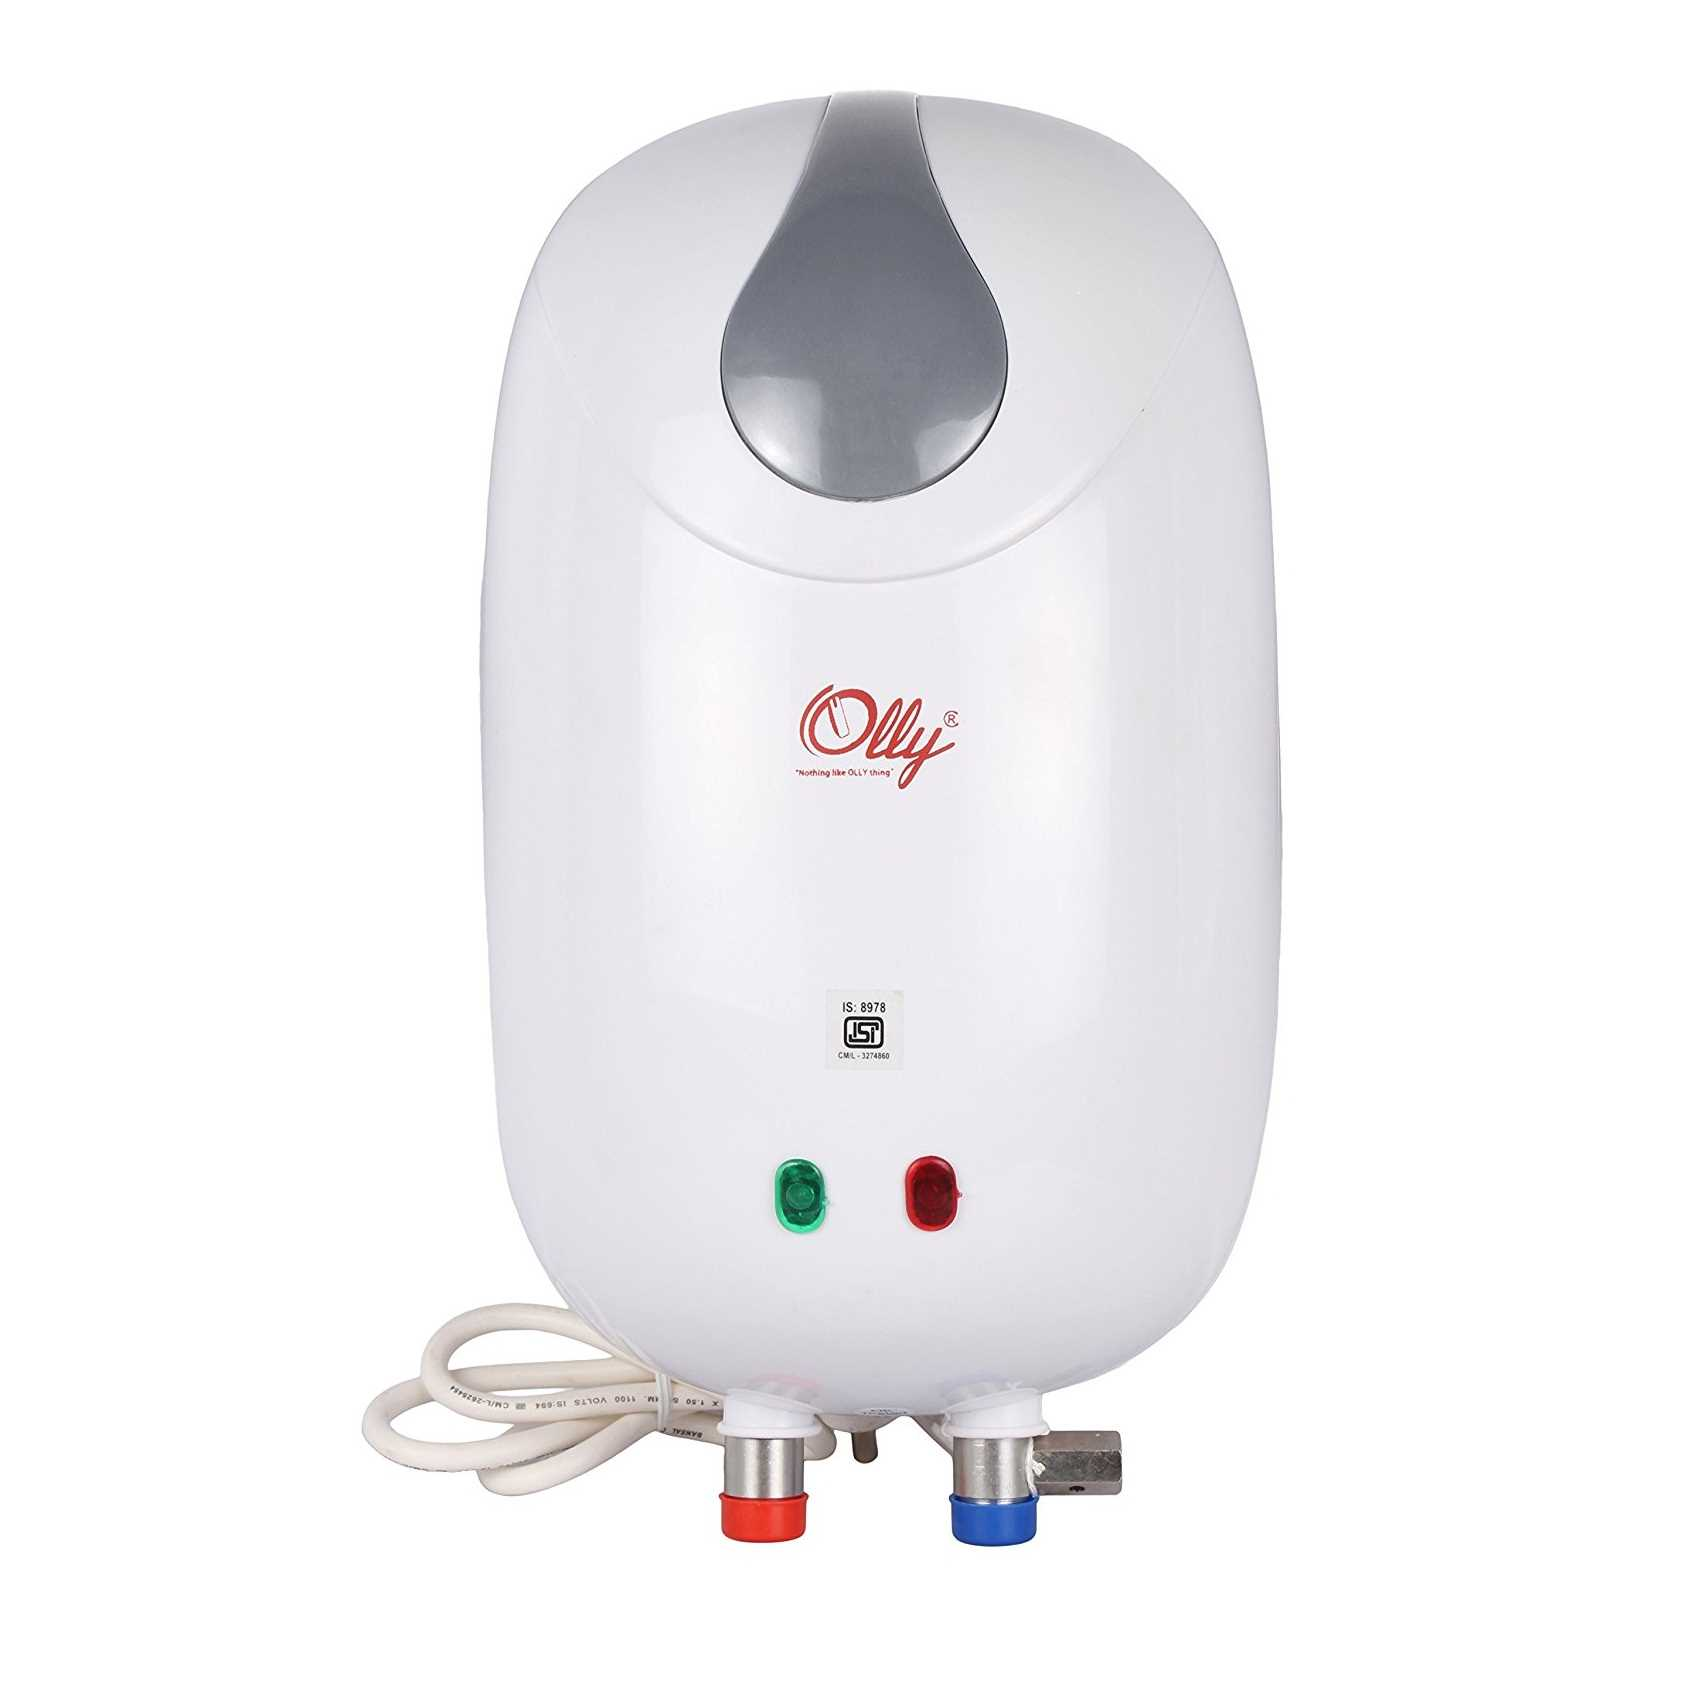 Olly Diamond EBS-02 3 Litre Storage Water Heater